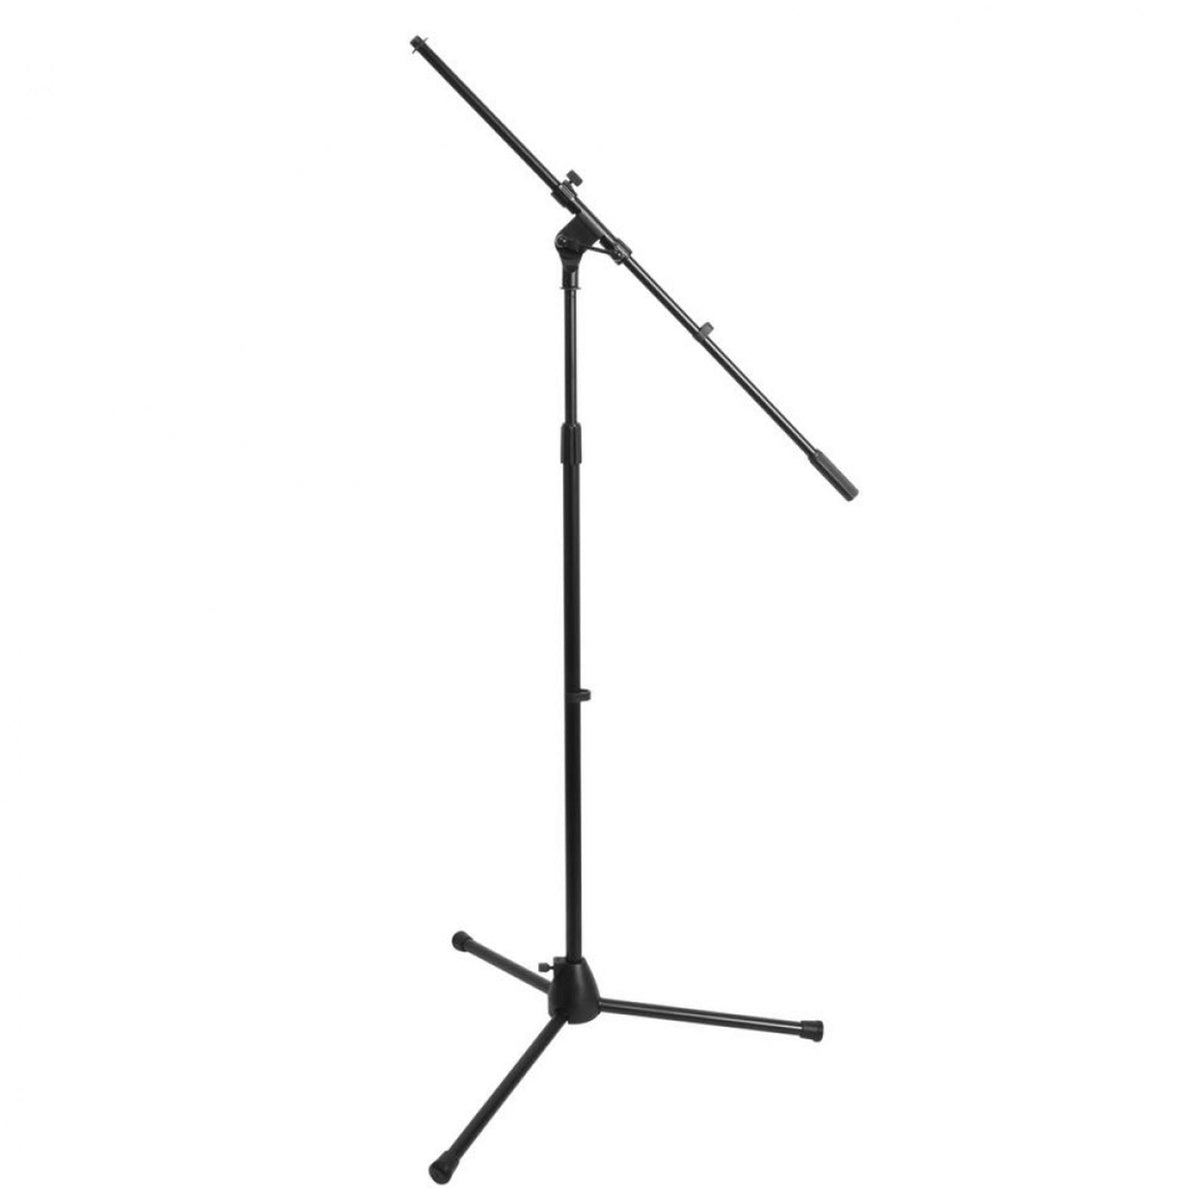 Sennheiser e835S Microphone Bundle with 20-foot XLR Cable & Stand